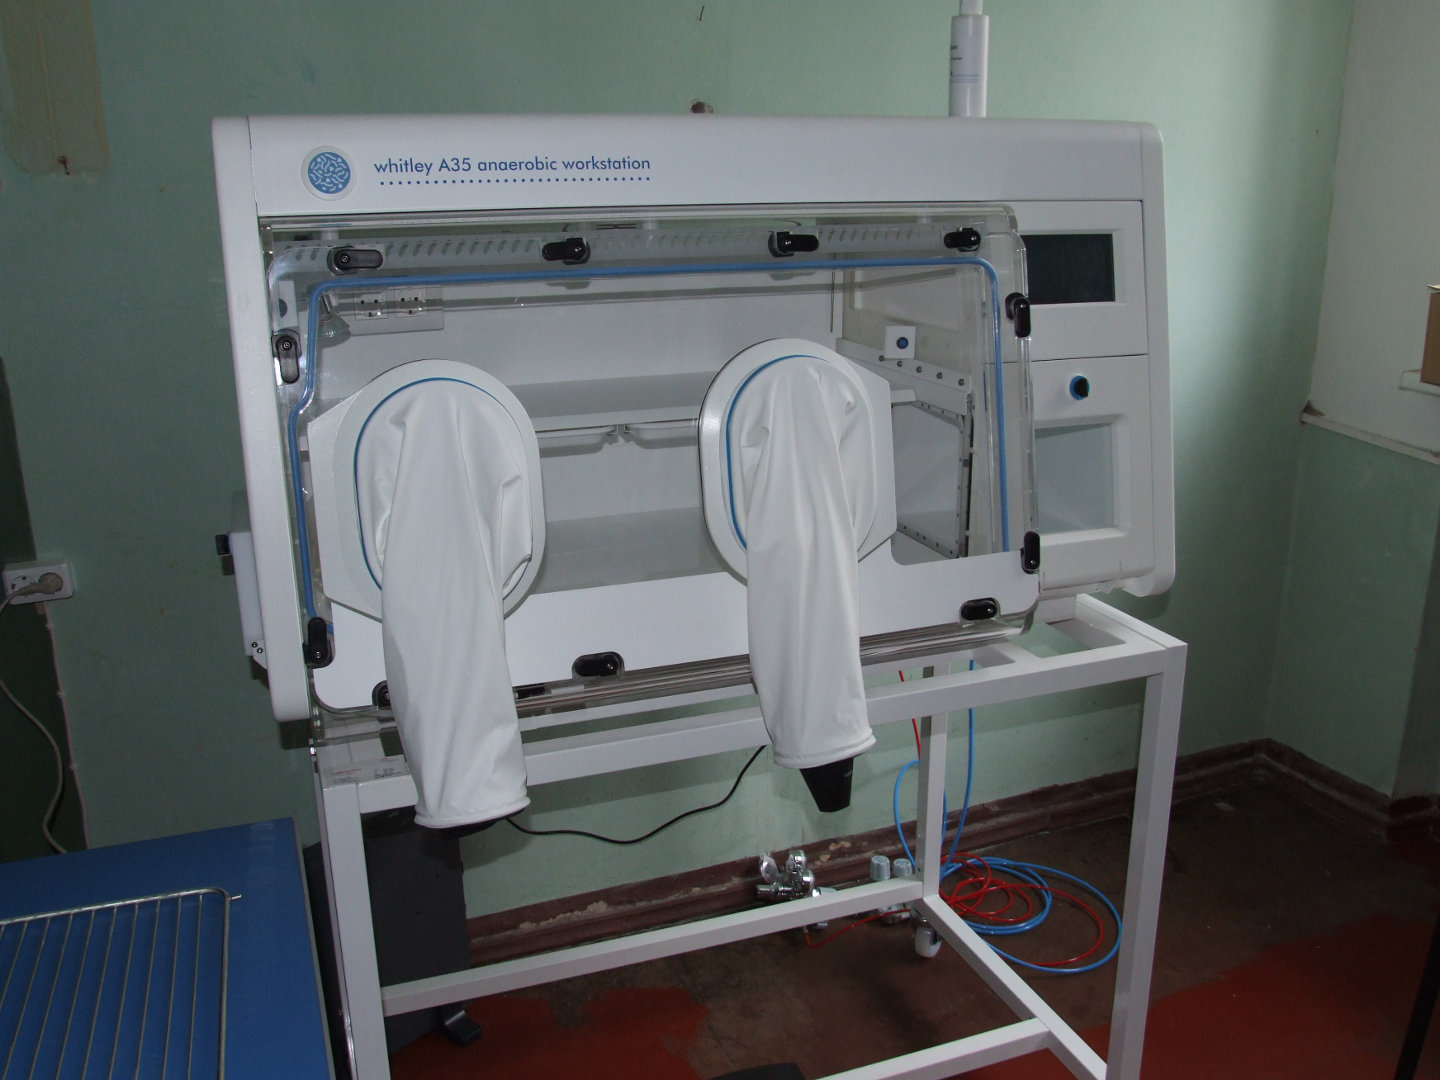 Anaerobic Workstation Whitley A35